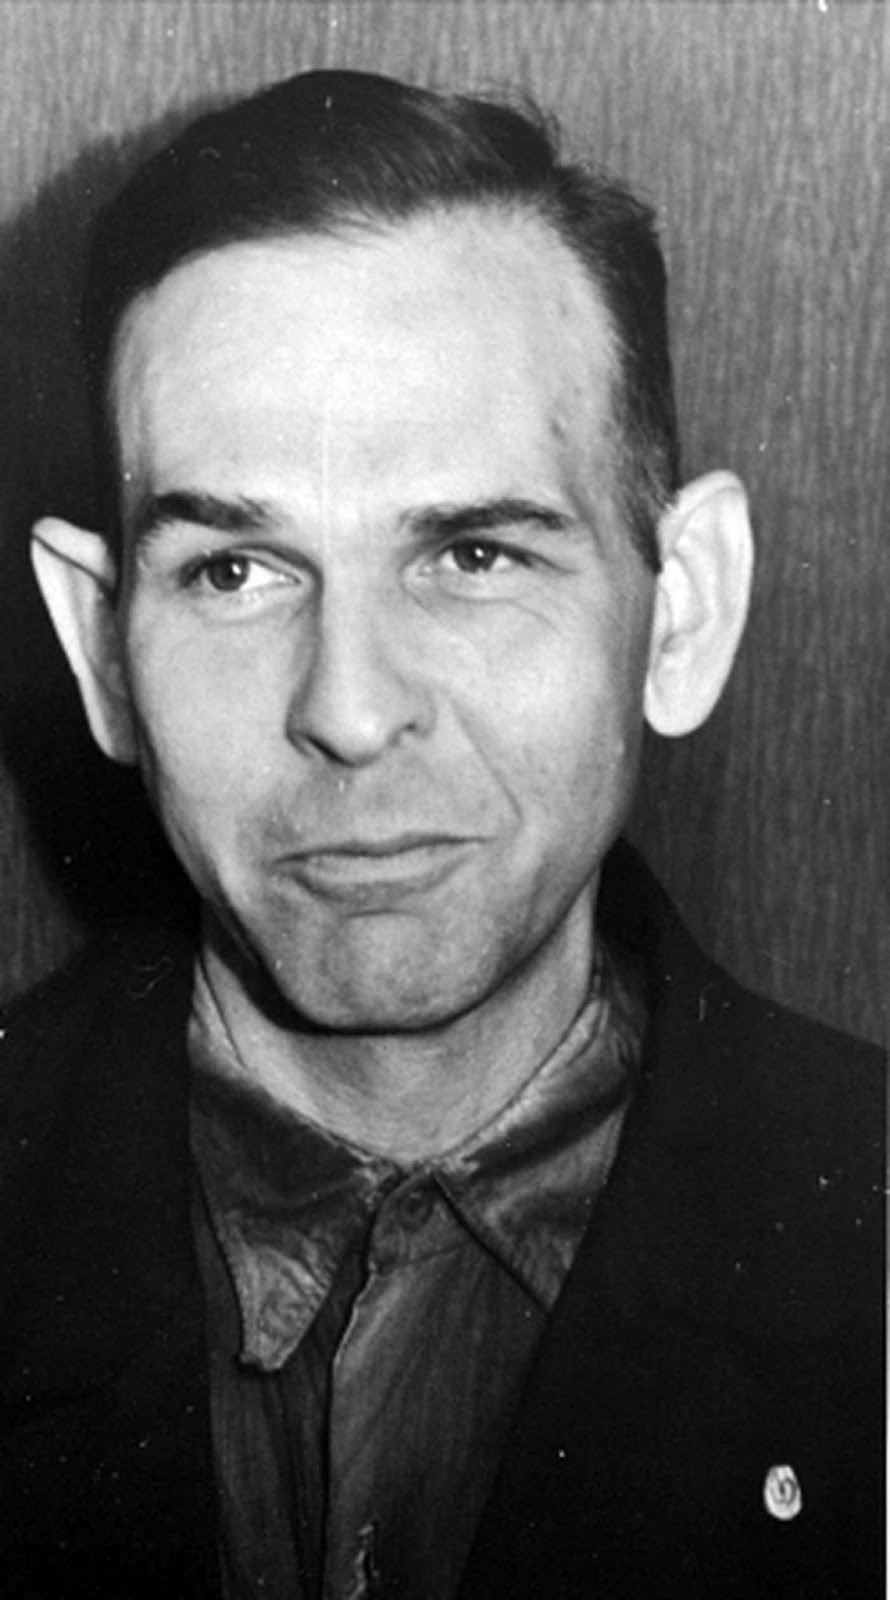 Amon Göth in 1946, shortly before his execution.